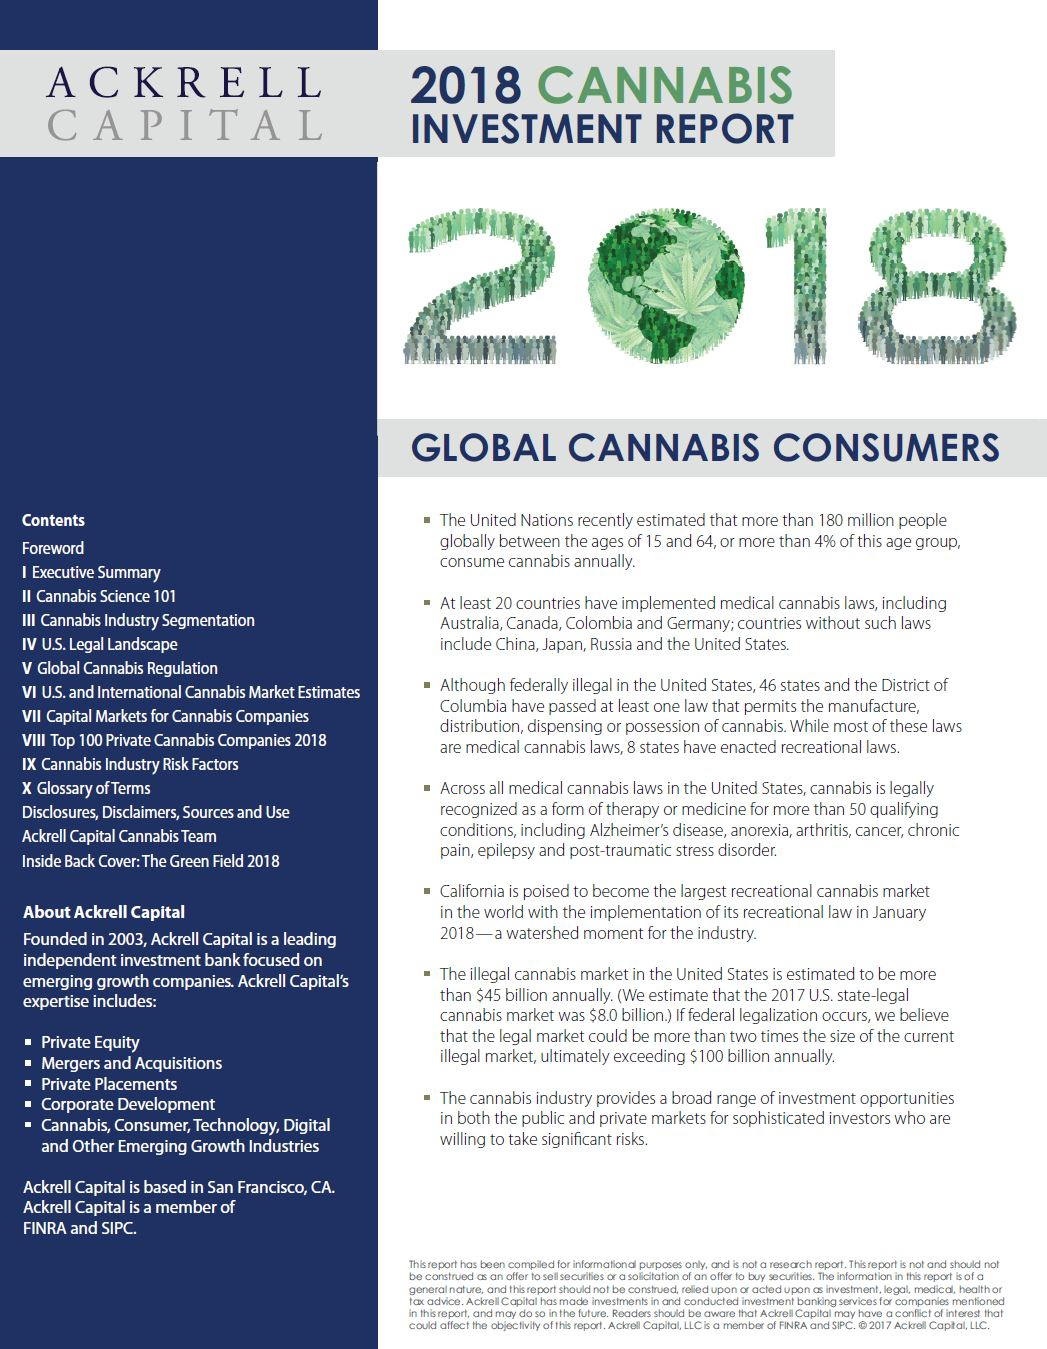 Ackrell Capital: 2018 Cannabis Investment Report